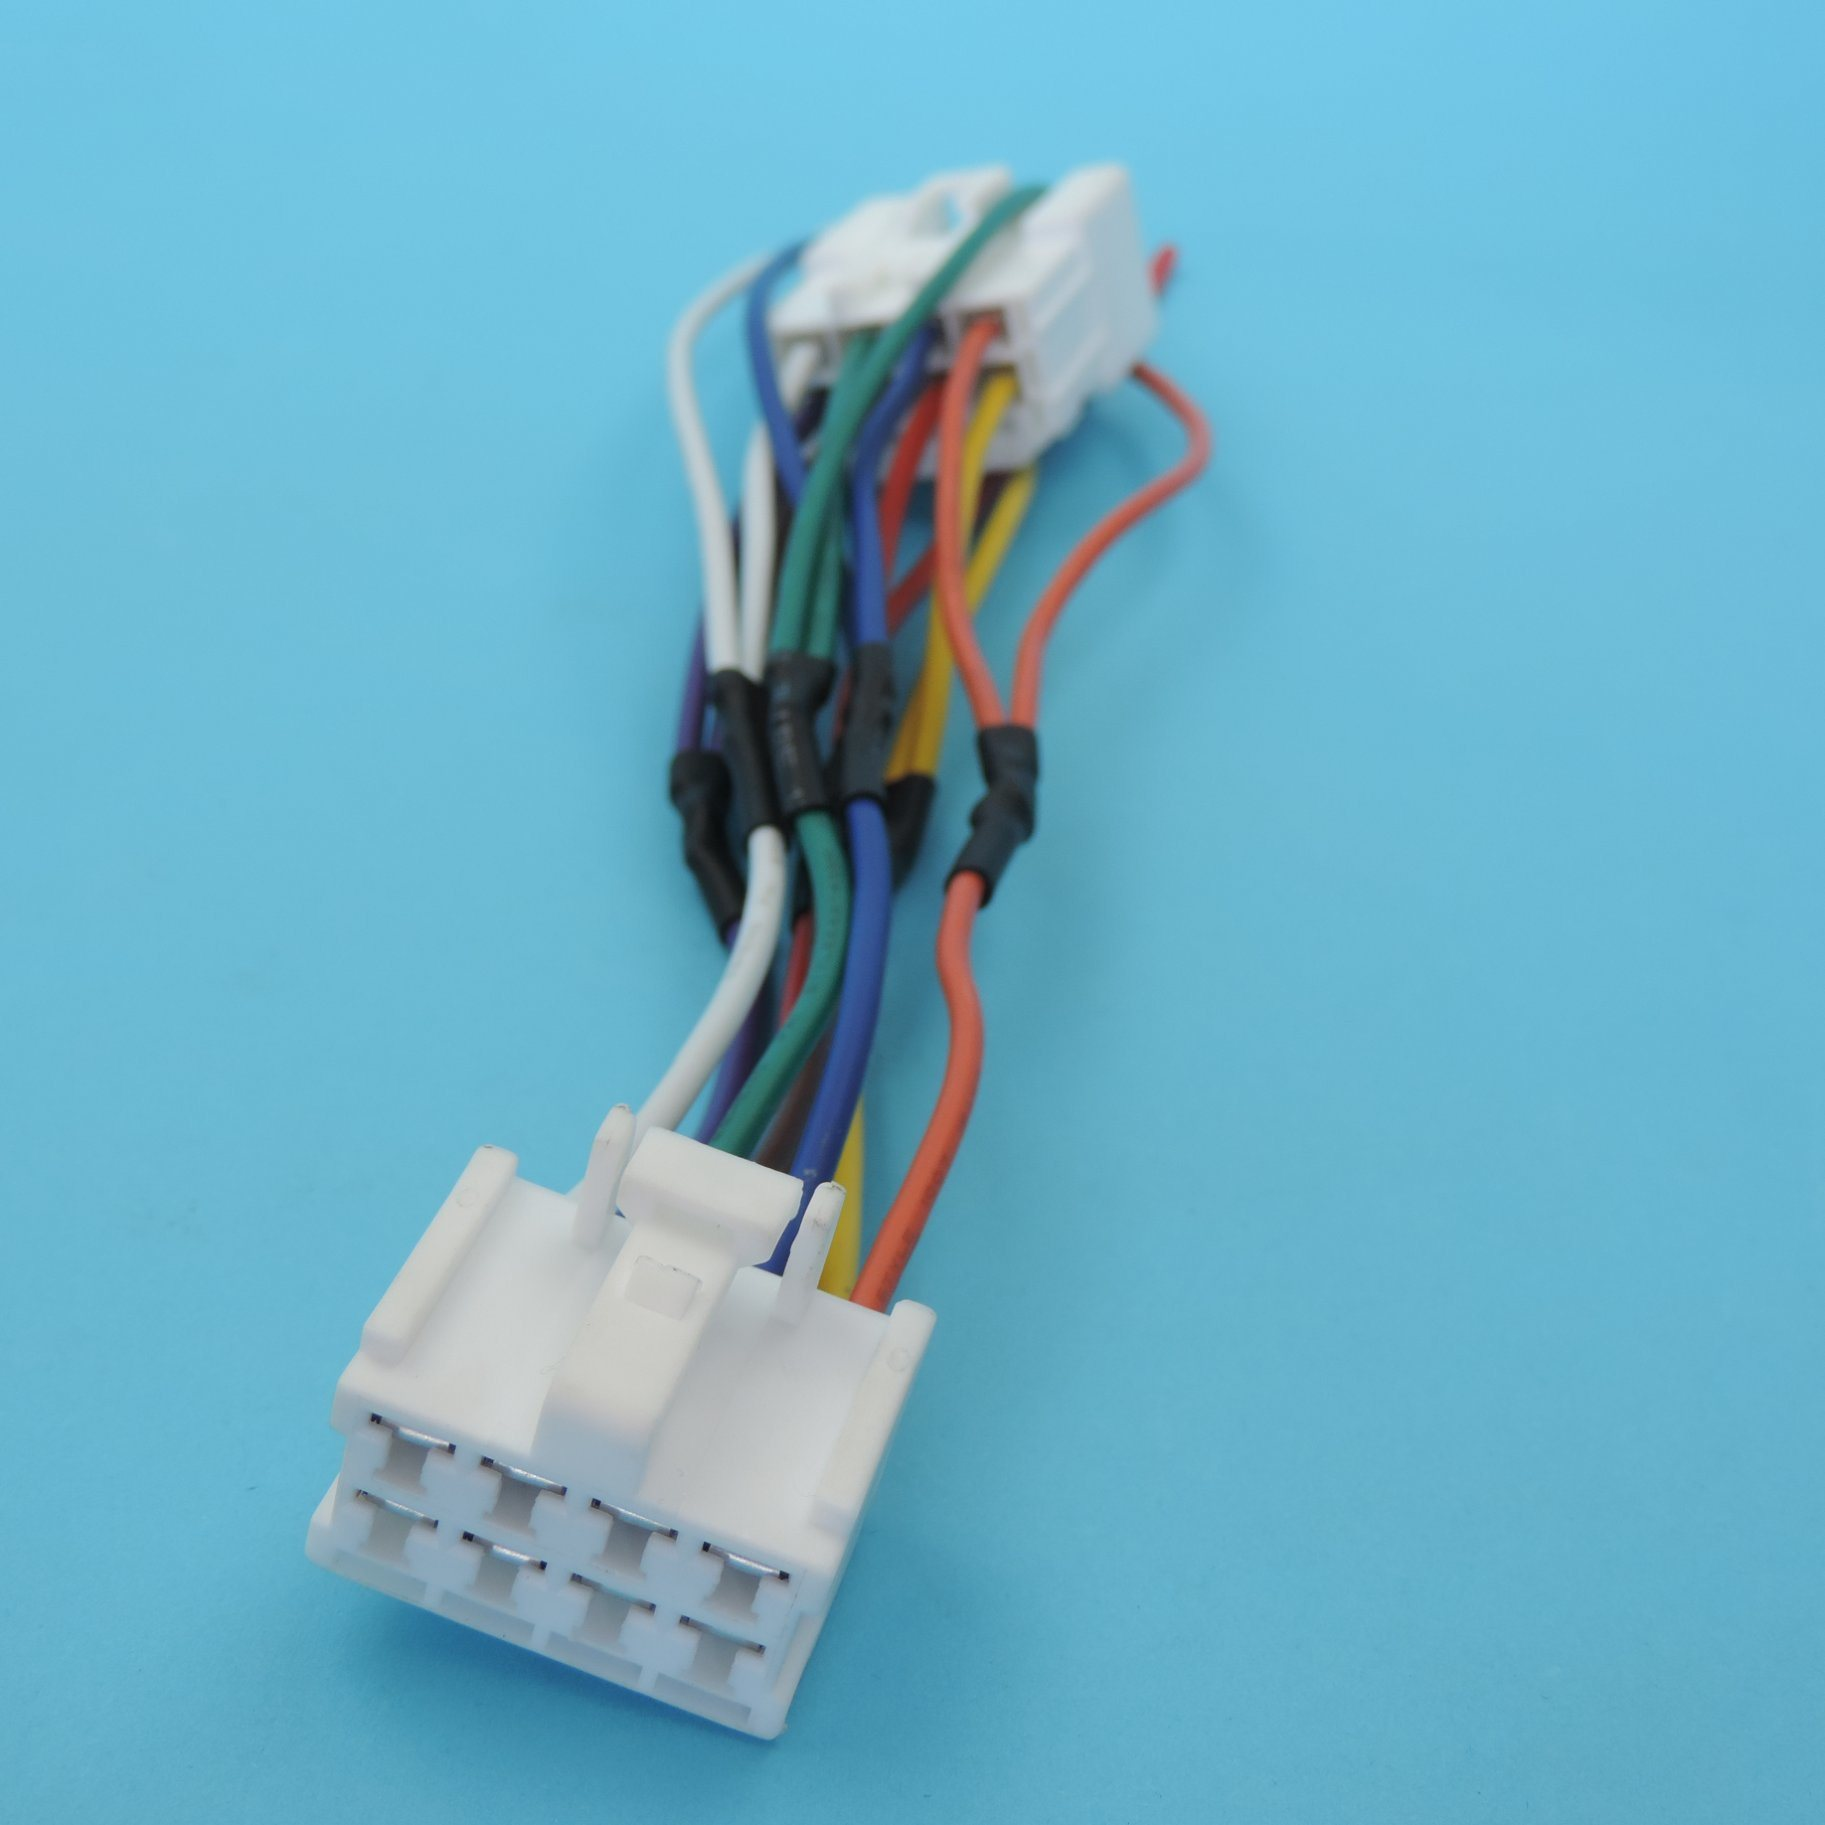 China Custom Auto Electrical Wire Connectors Plug Wire Connector Electrical  Engine Wiring Harness Cable Assembly - China Automotive Wire Harness, Auto  Cable AssemblyShanghai Star Electronic Technology Co., Ltd.